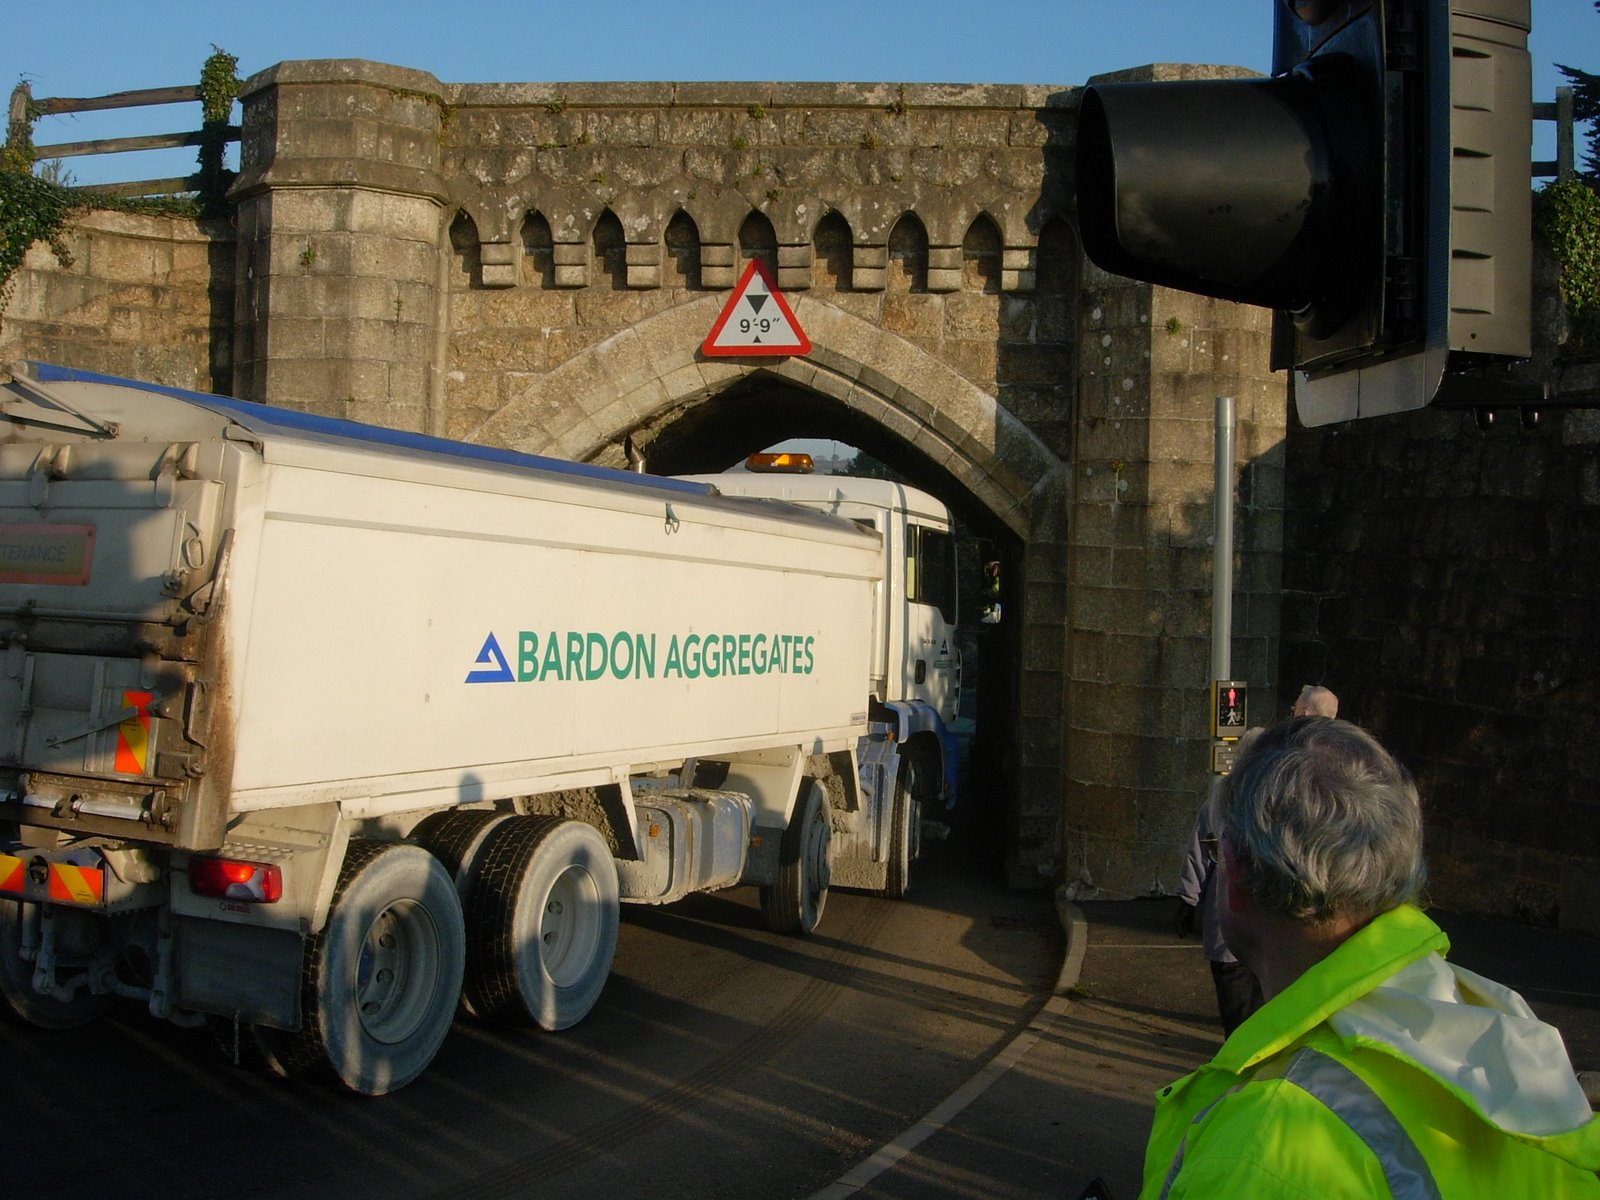 Trial lorry going through arch